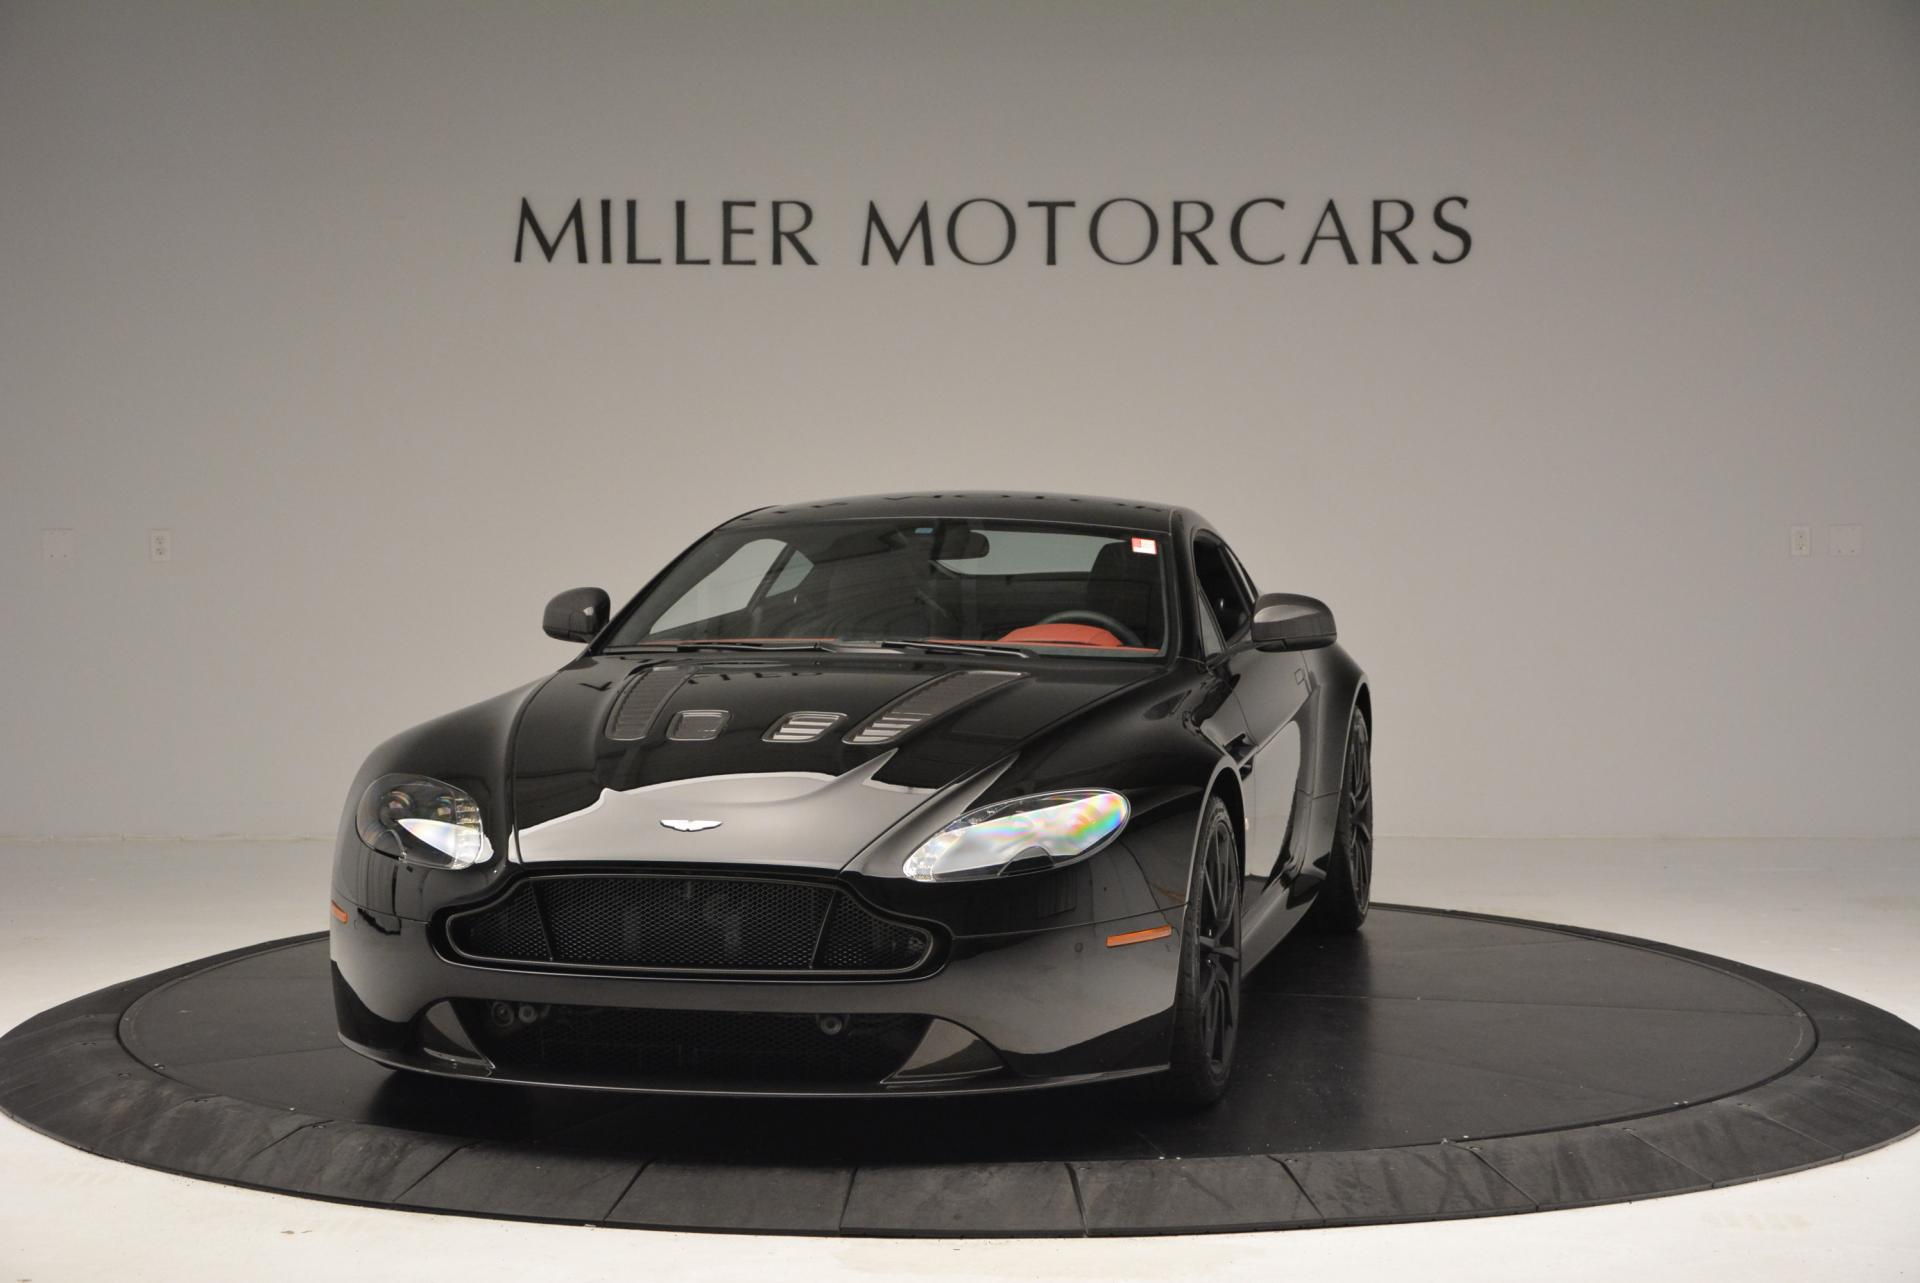 New 2015 Aston Martin V12 Vantage S for sale Sold at Pagani of Greenwich in Greenwich CT 06830 1